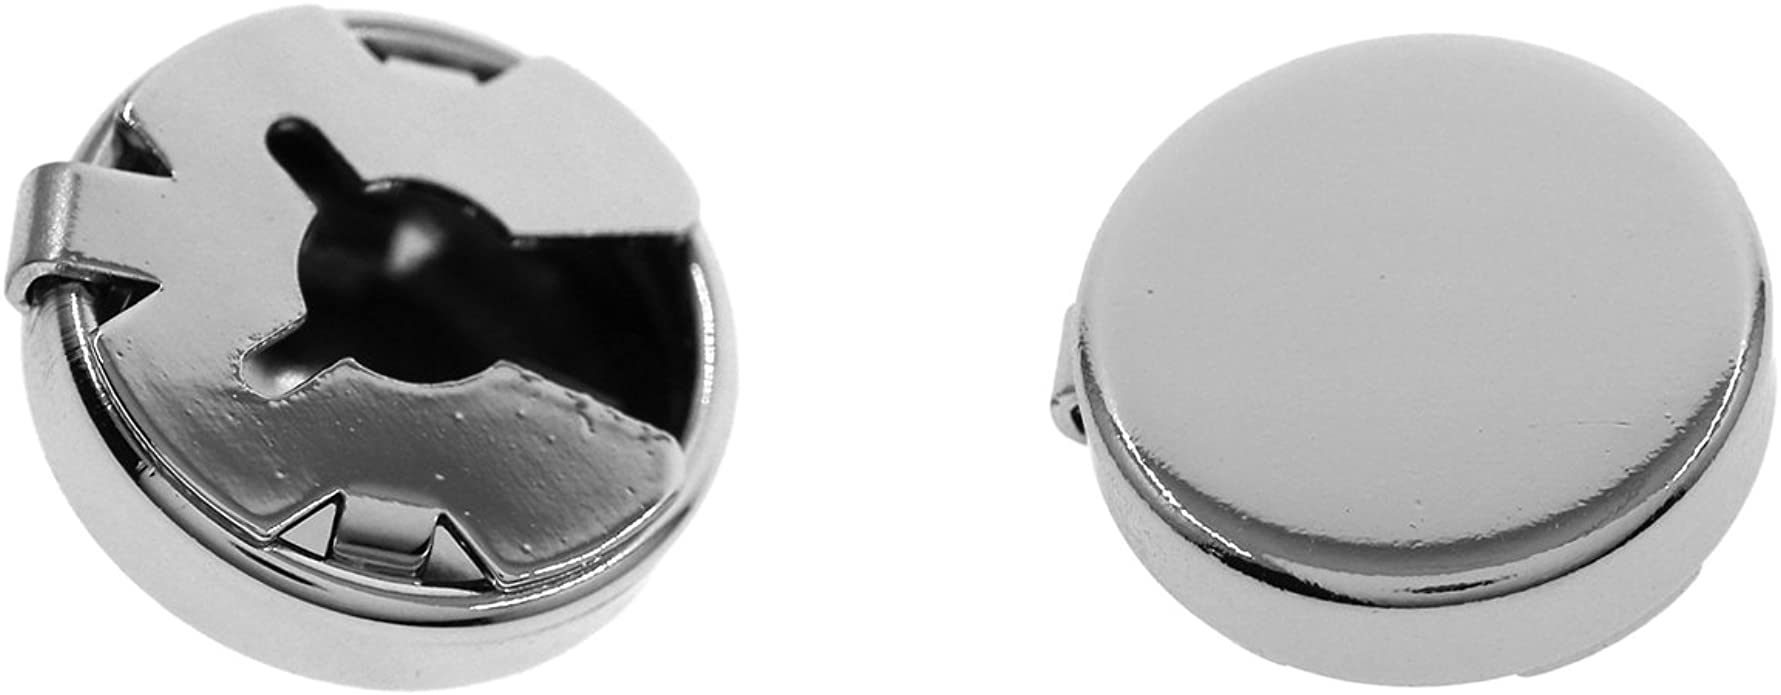 1 pairs 2pcs Inside the 15mm white steel golden gun black and black cyan cufflinks with the French cuff links,A1741-1